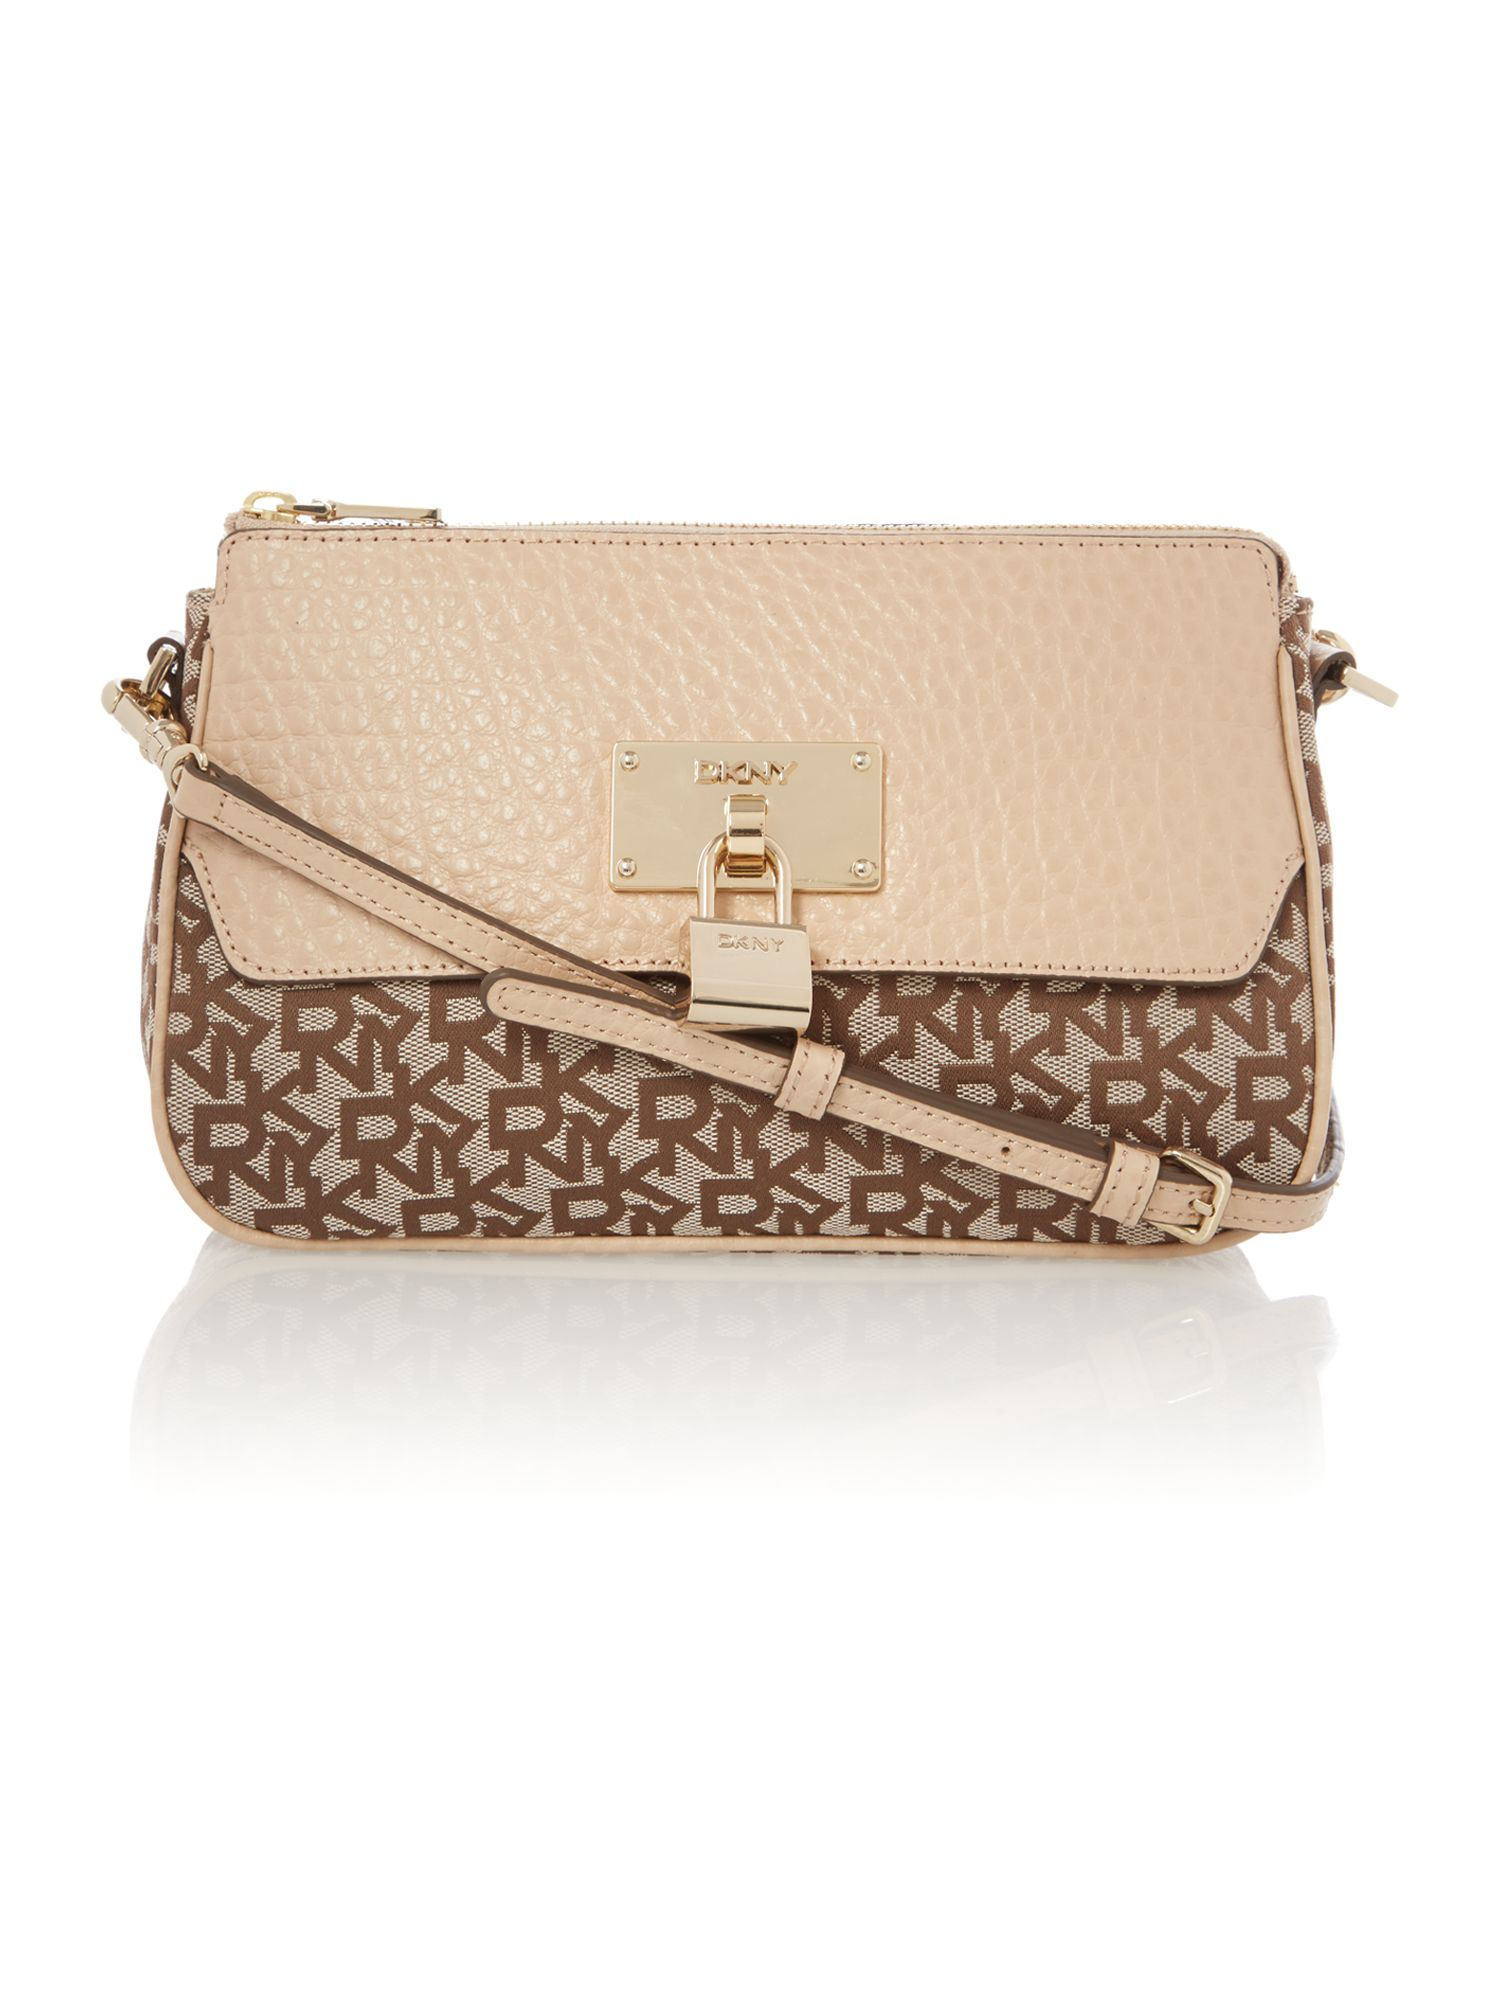 French grain tan crossbody bag